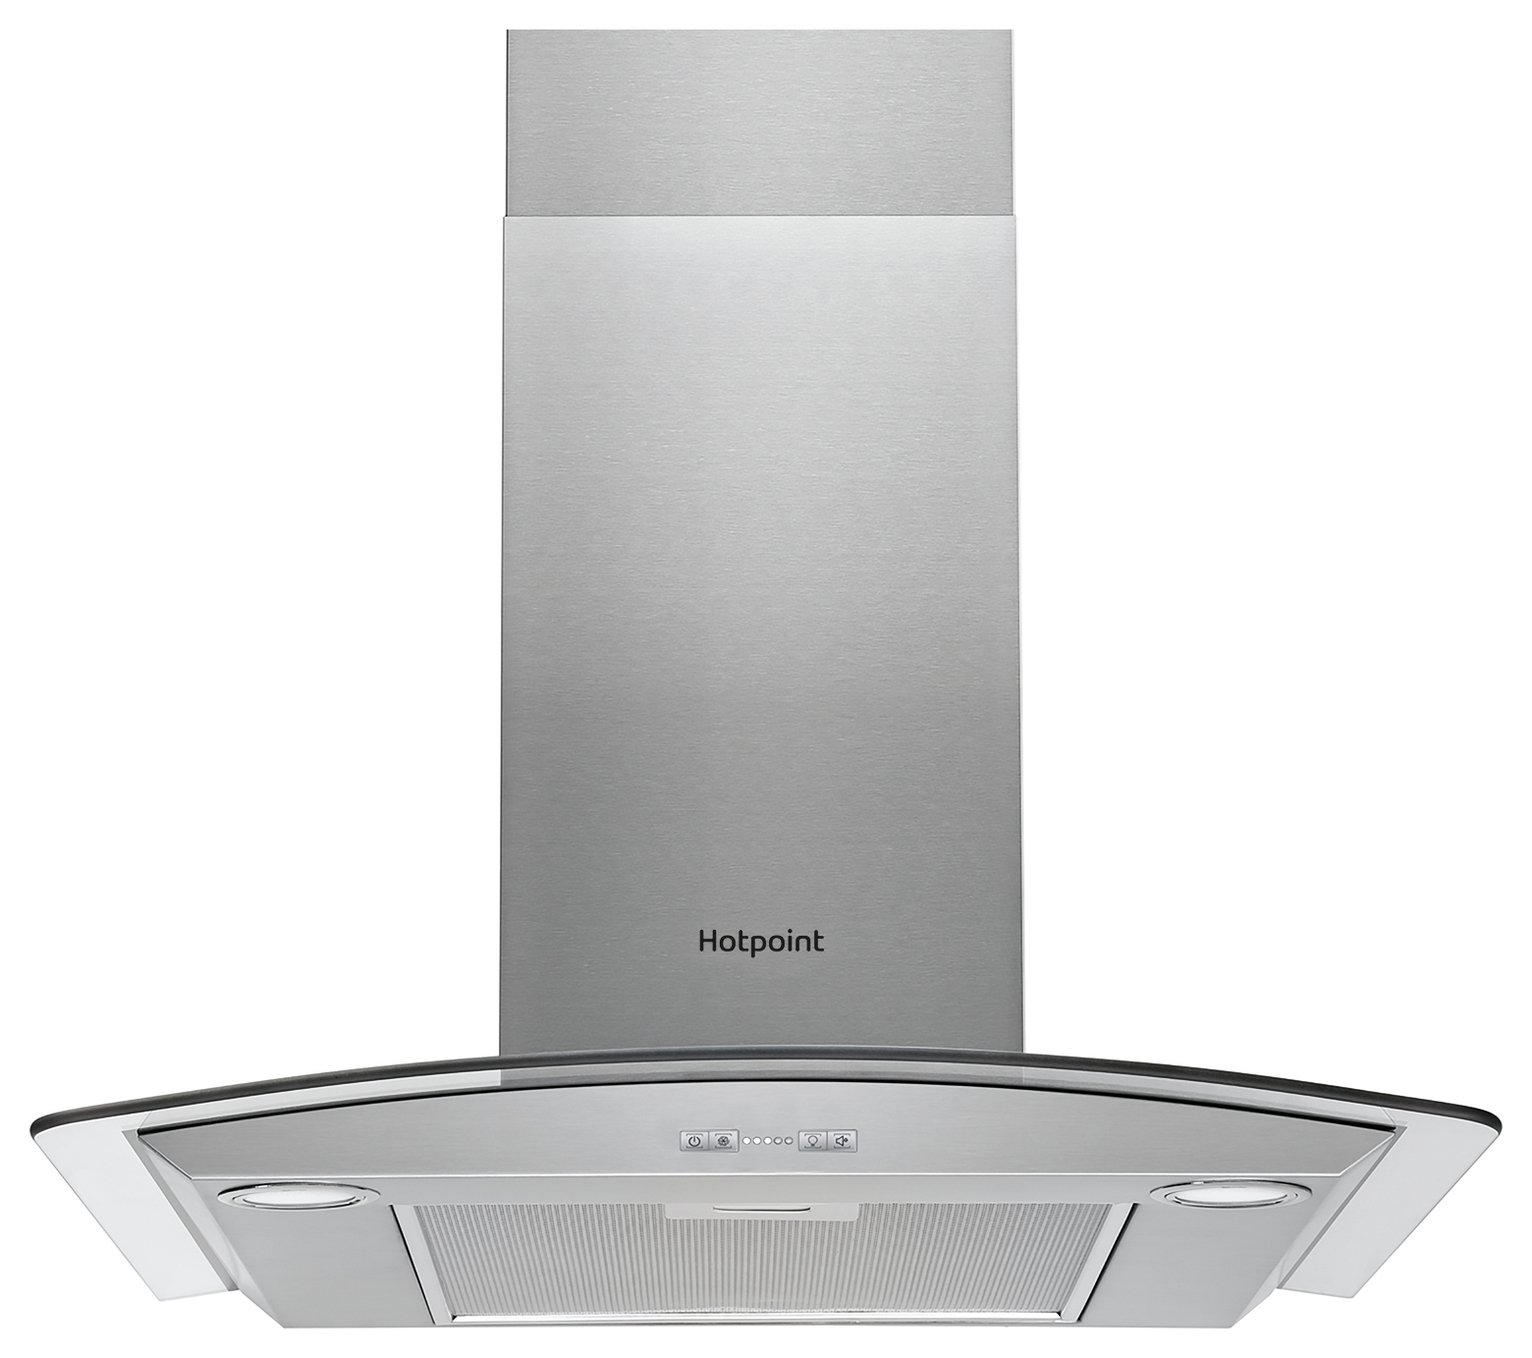 Hotpoint PHGC6.4 FLMX 60cm Cooker Hood - Stainless Steel